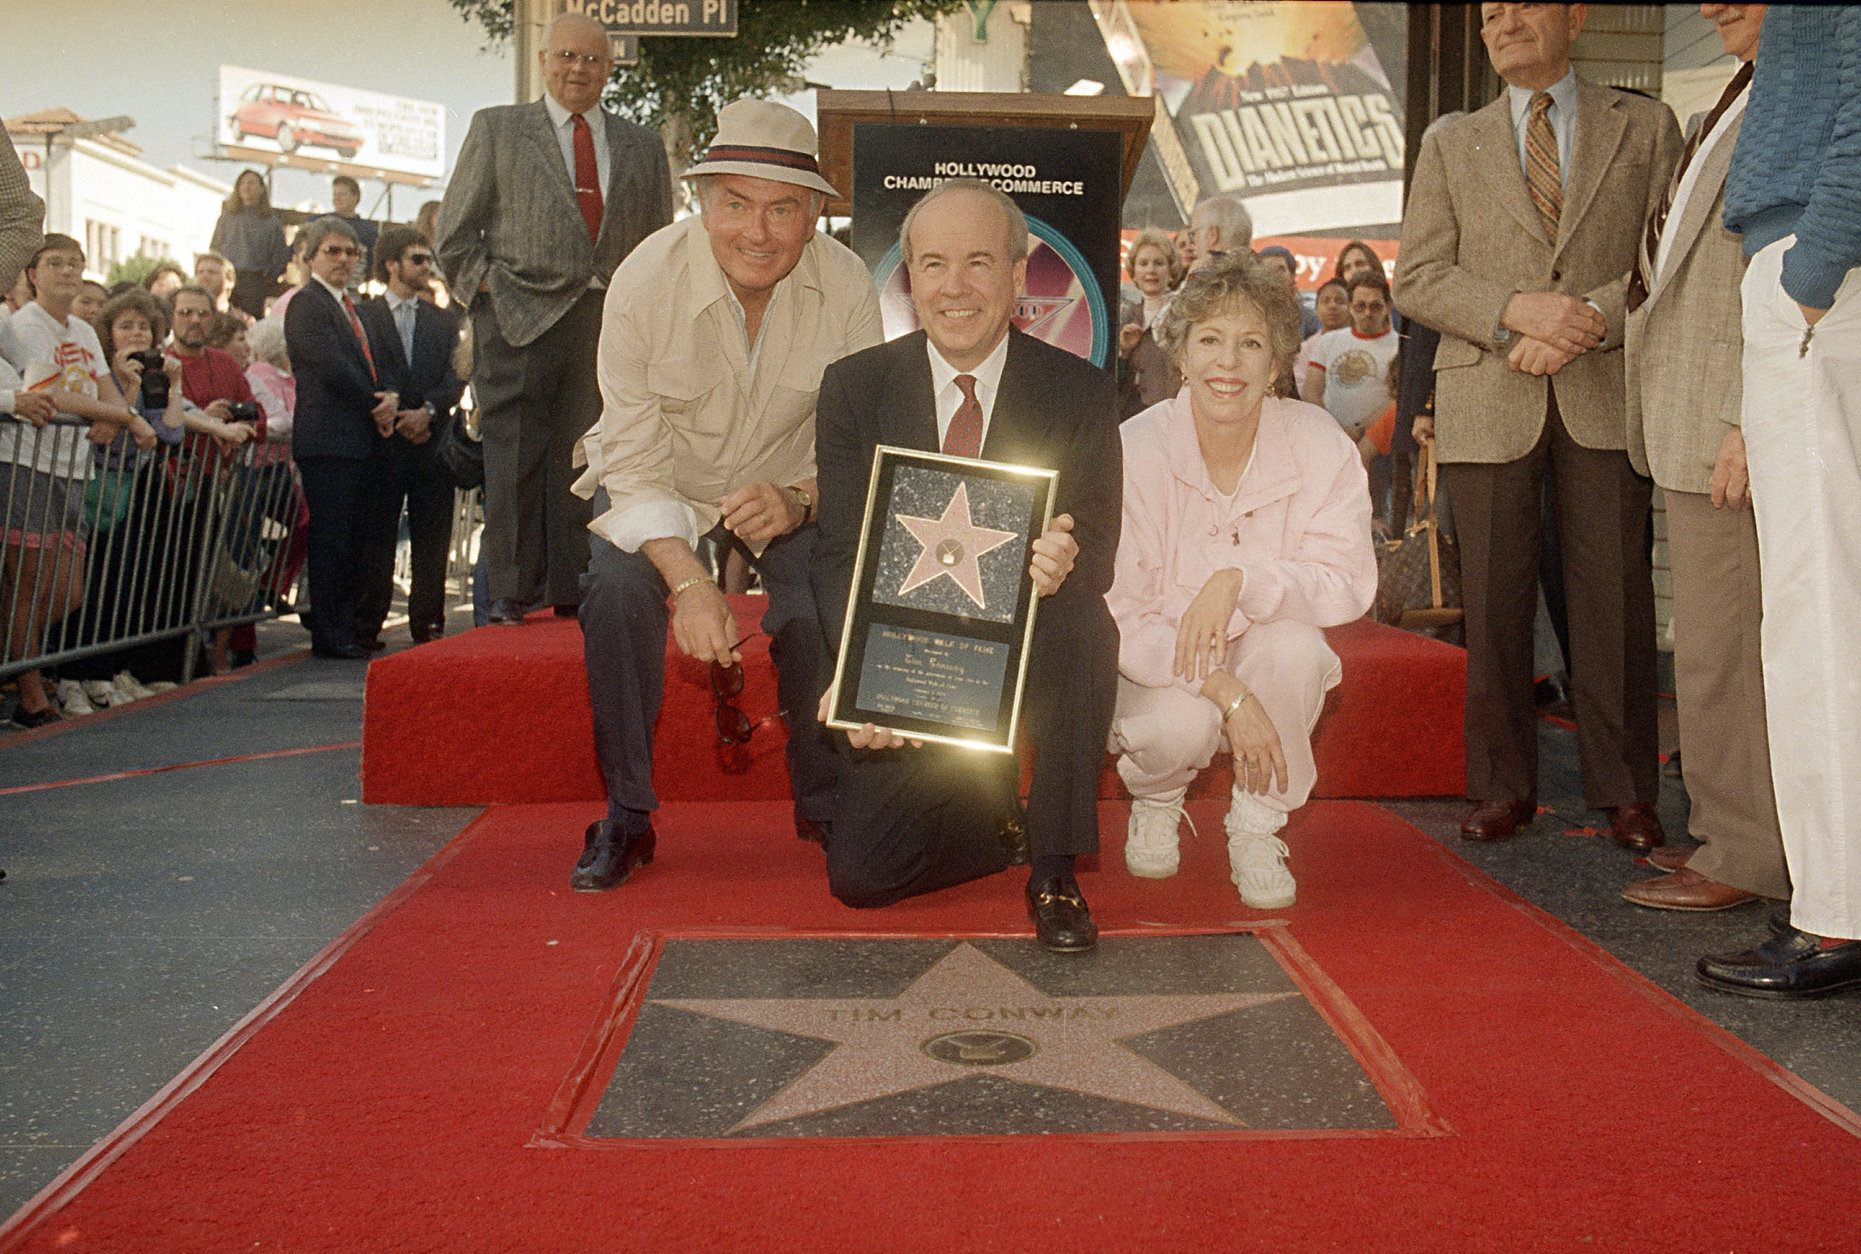 Comedian Tim Conway, flanked by Harvey Korman and Carol Burnett, receives his star on the Hollywood Walk of Fame, Feb. 21, 1989.  (AP Photo/Mark J. Terrill)